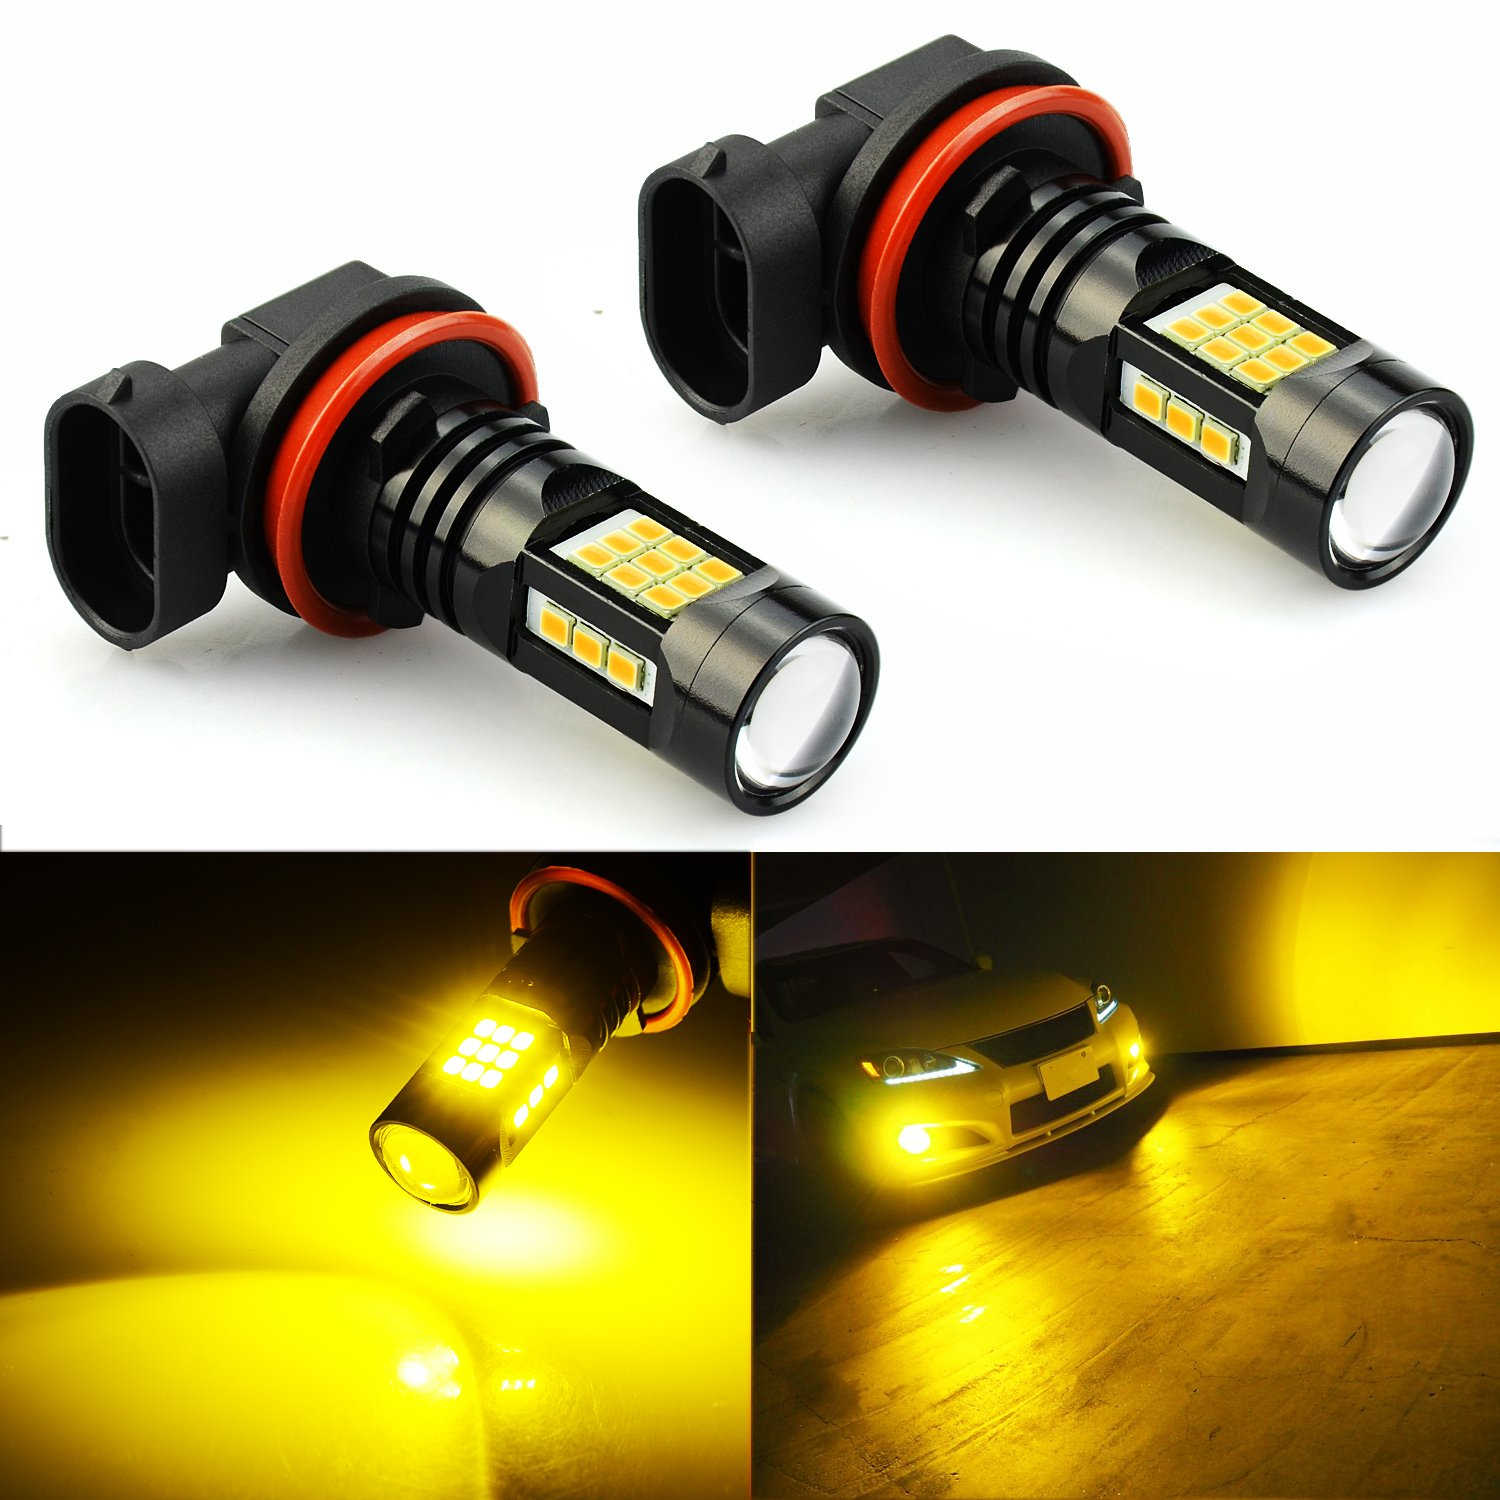 Jdm Astar Extremely Bright Px Chips H11 H16 Led Fog Light Bulbs Golden Yellow Buy Online In Dominica At Dominica Desertcart Com Productid 122565093